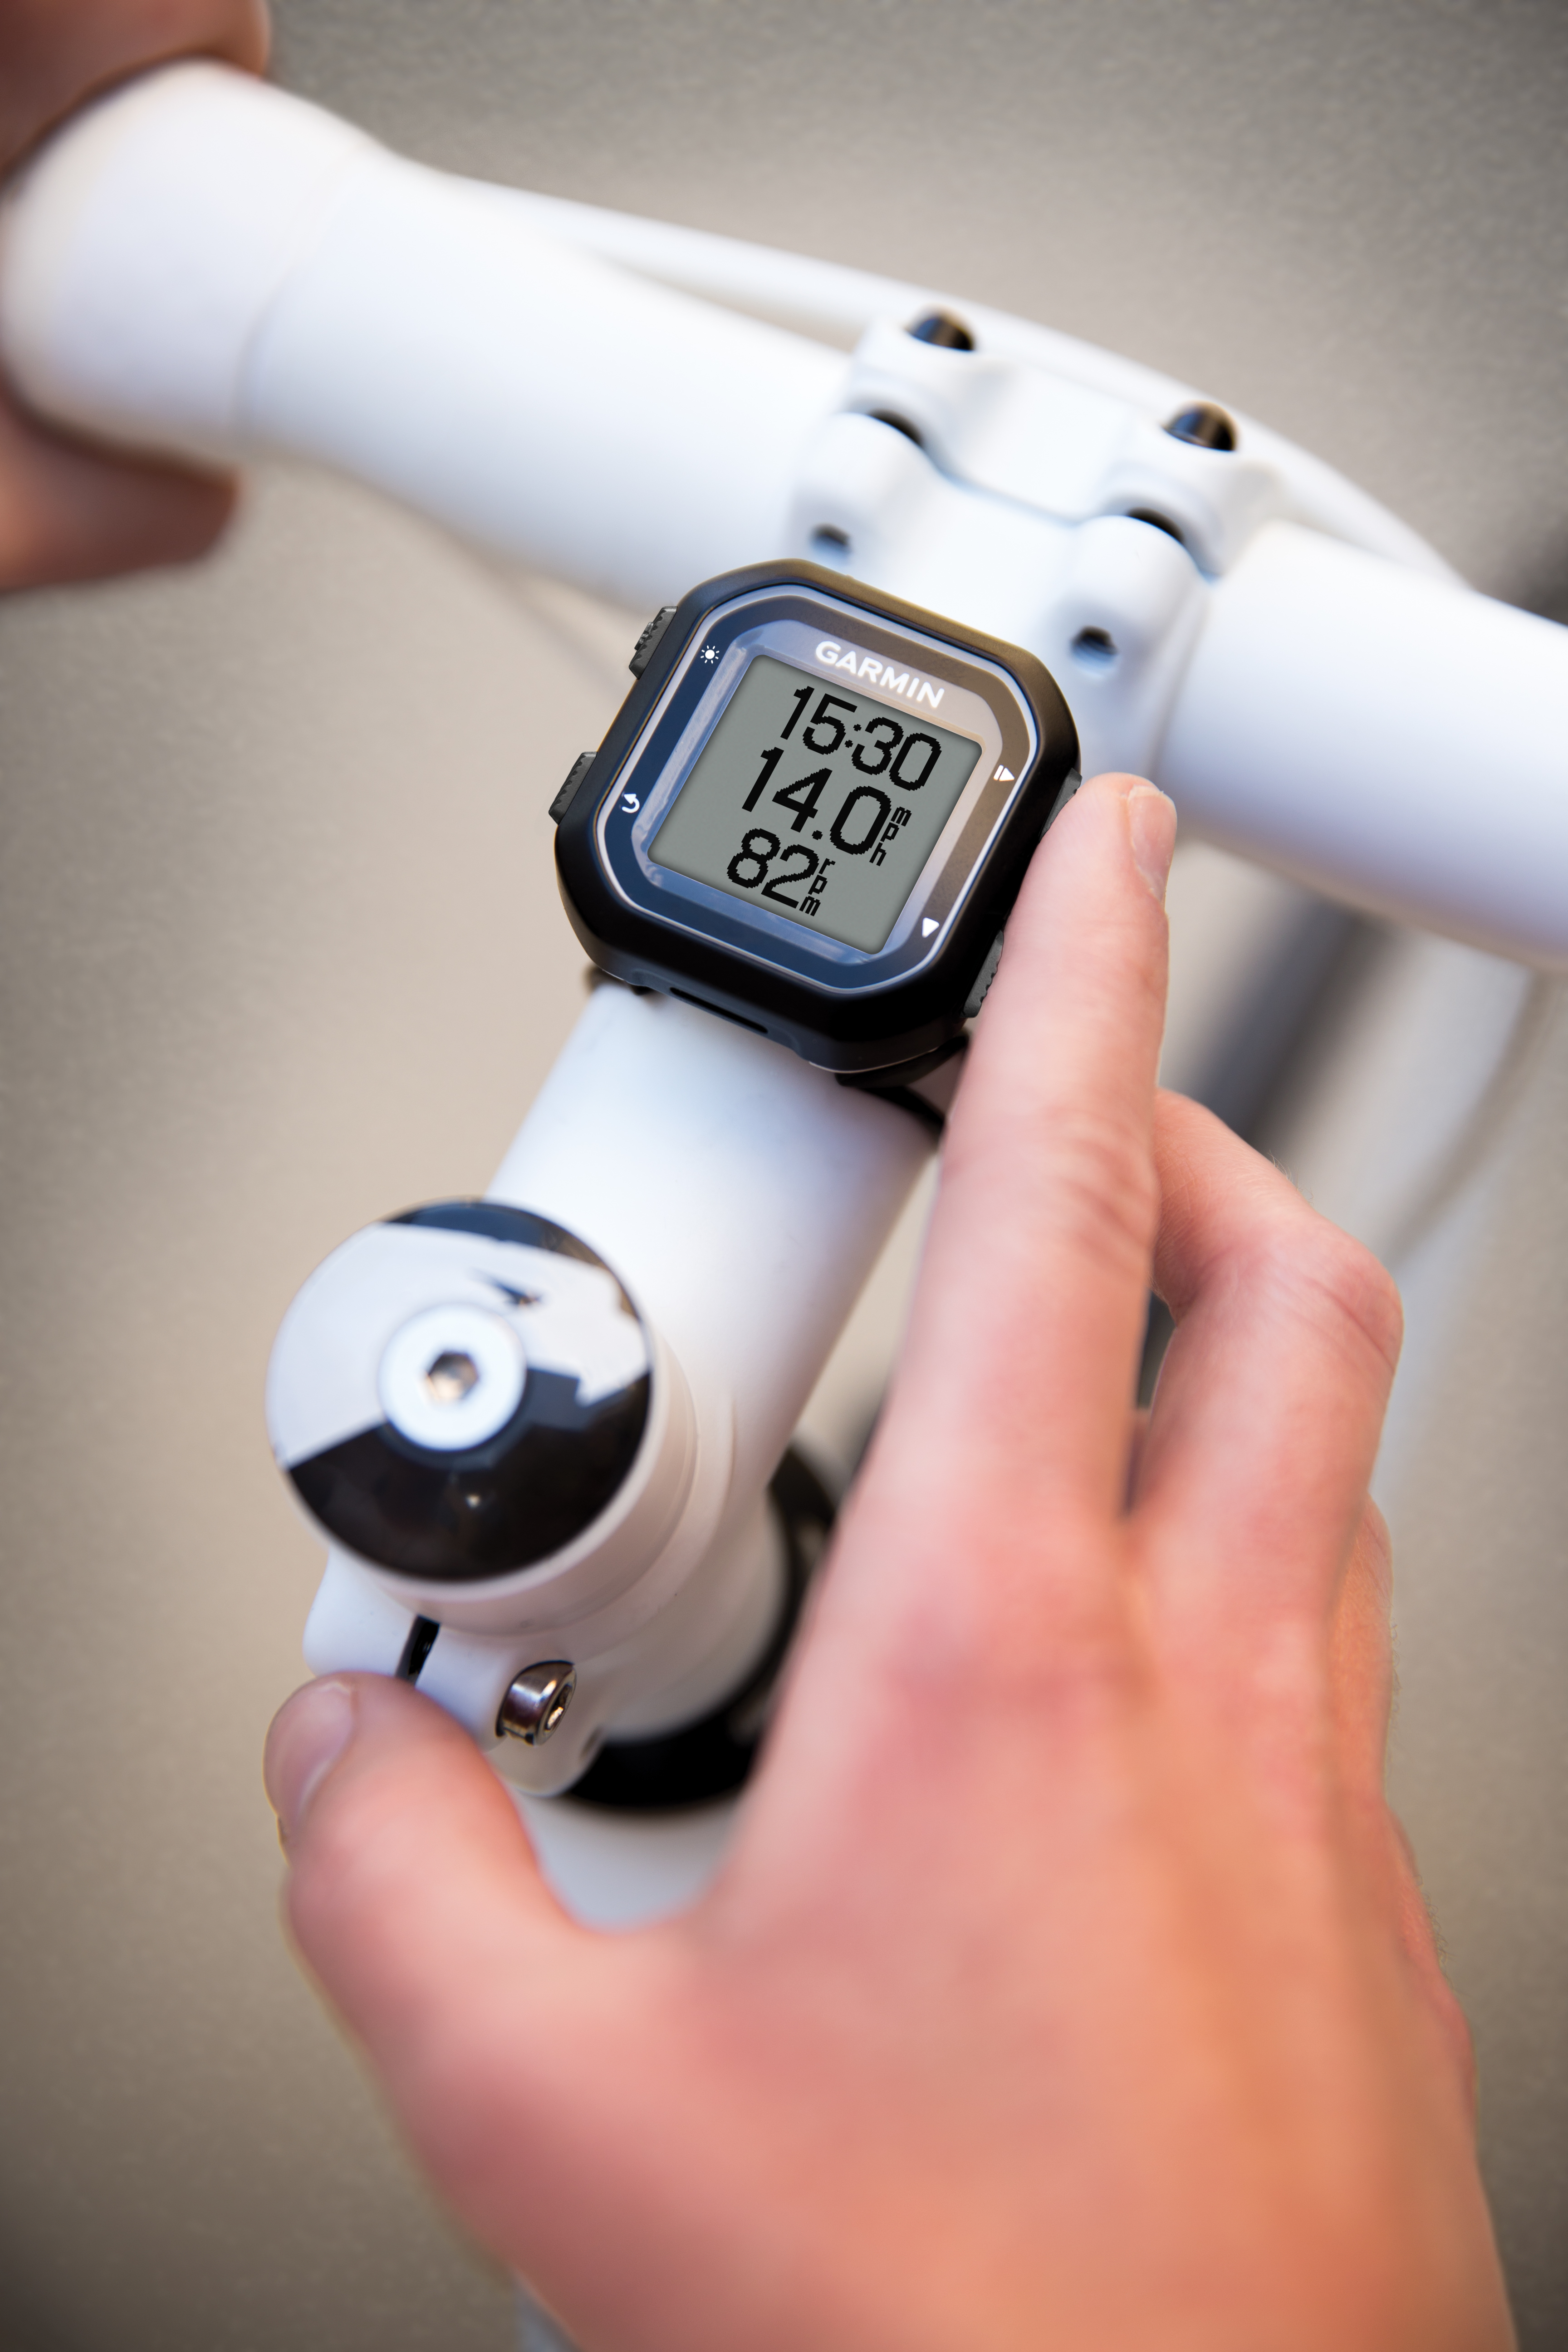 Garmin offers two small-and-simple bike computers